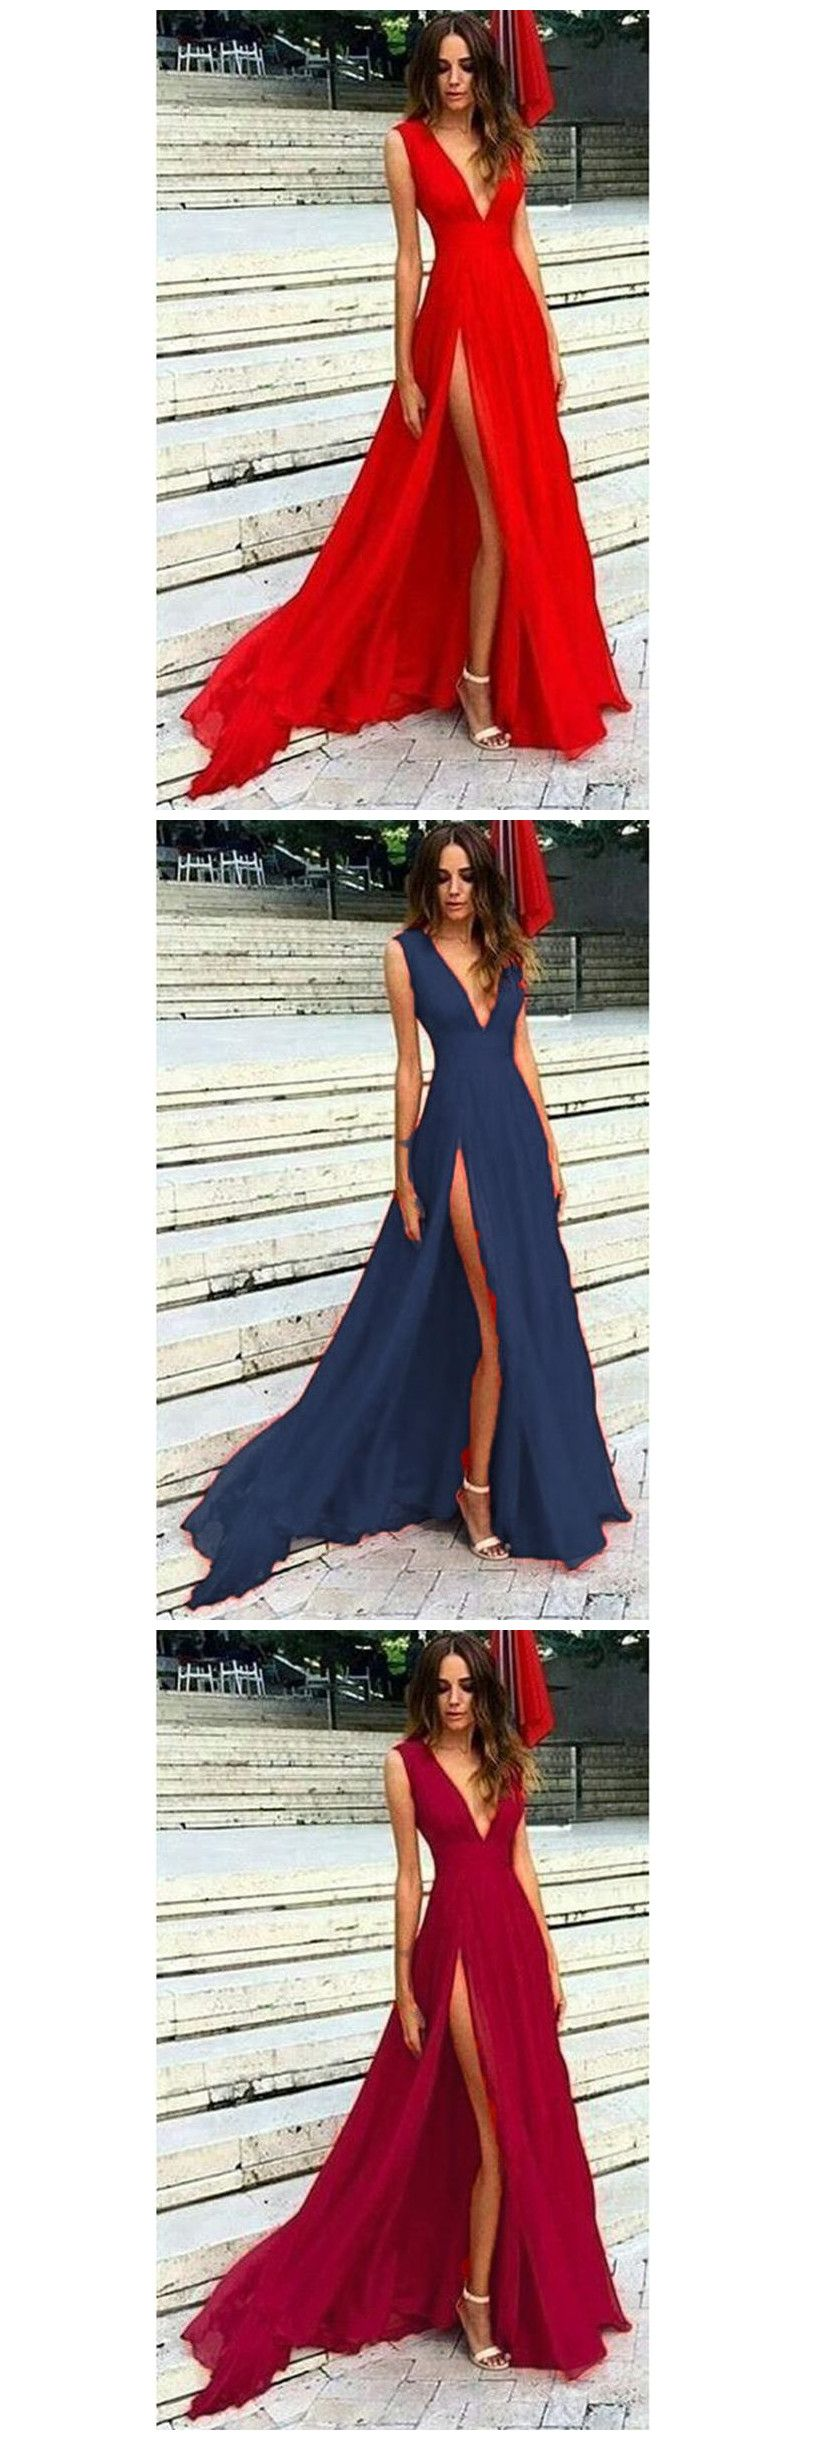 New arrival prom dress red long sexy slit prom dress v neck evening